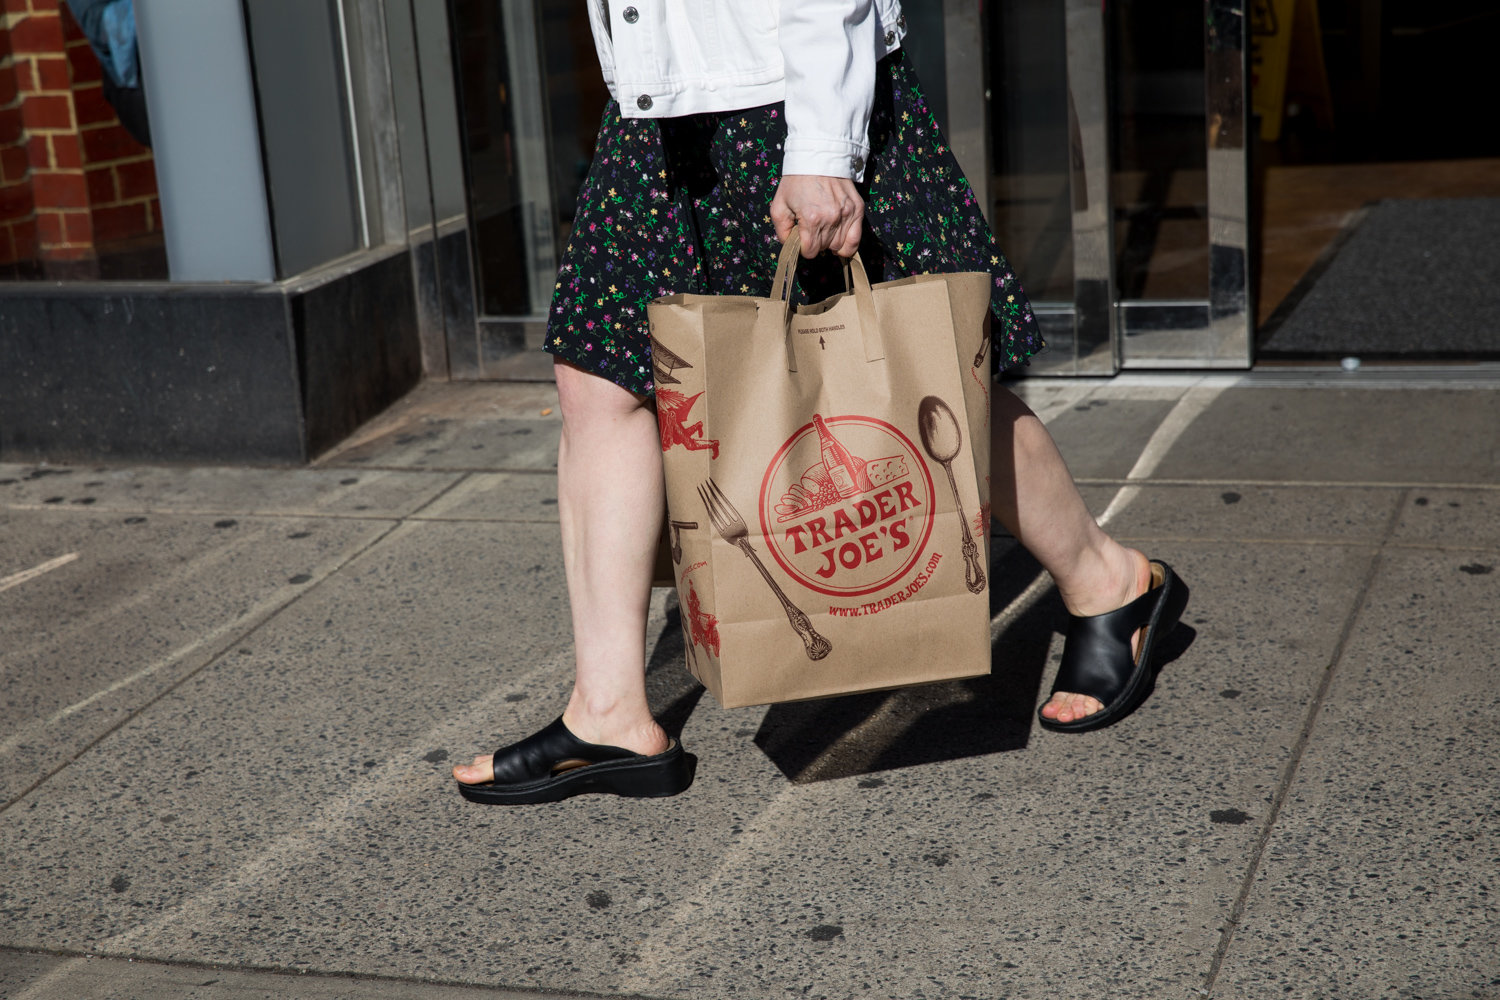 Trader Joe's is in some ways the standard-bearer for high quality, durable paper bags. With the statewide plastic bag ban set to go into effect March 1, retailers will have to make the switch to paper bags, though they will not be of the same quality. Outlets like Trader Joe's have contracts with manufacturers to produce their bags.